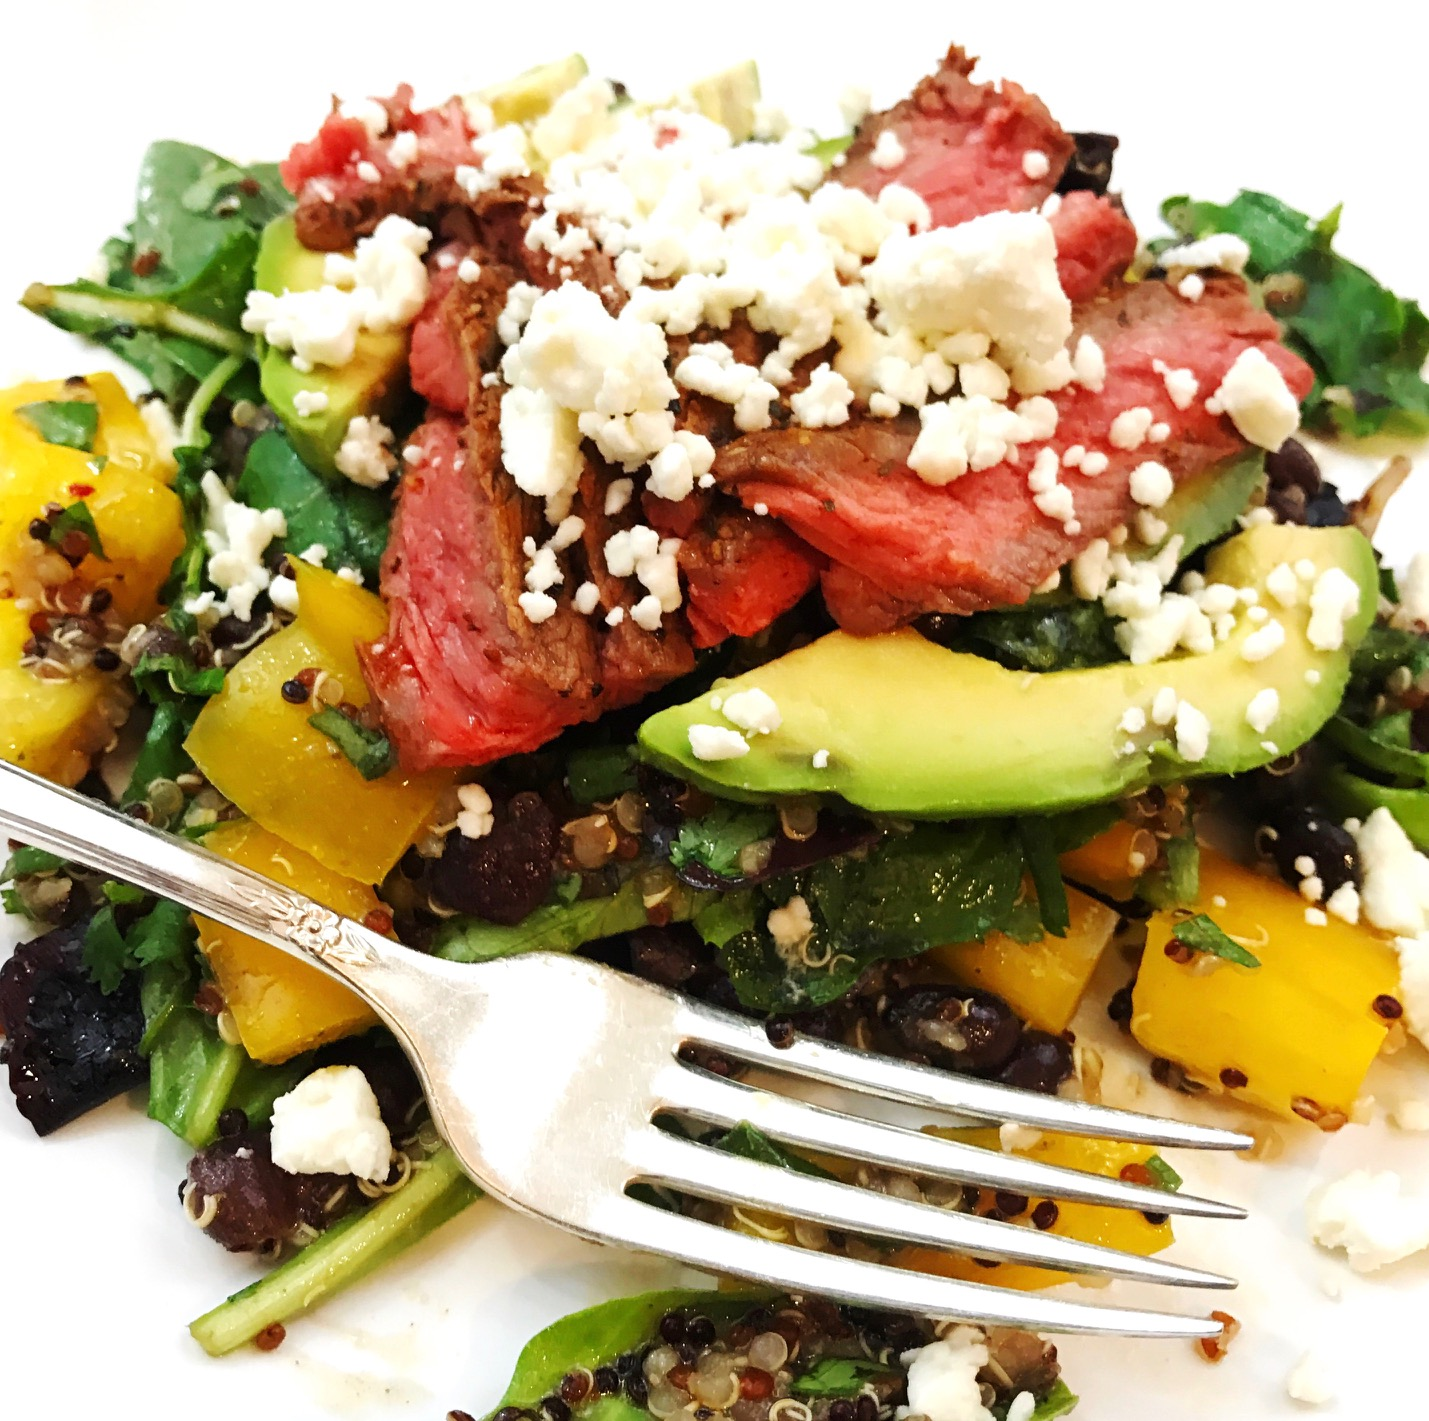 Spicy Steak Salad with Quinoa and Black Beans